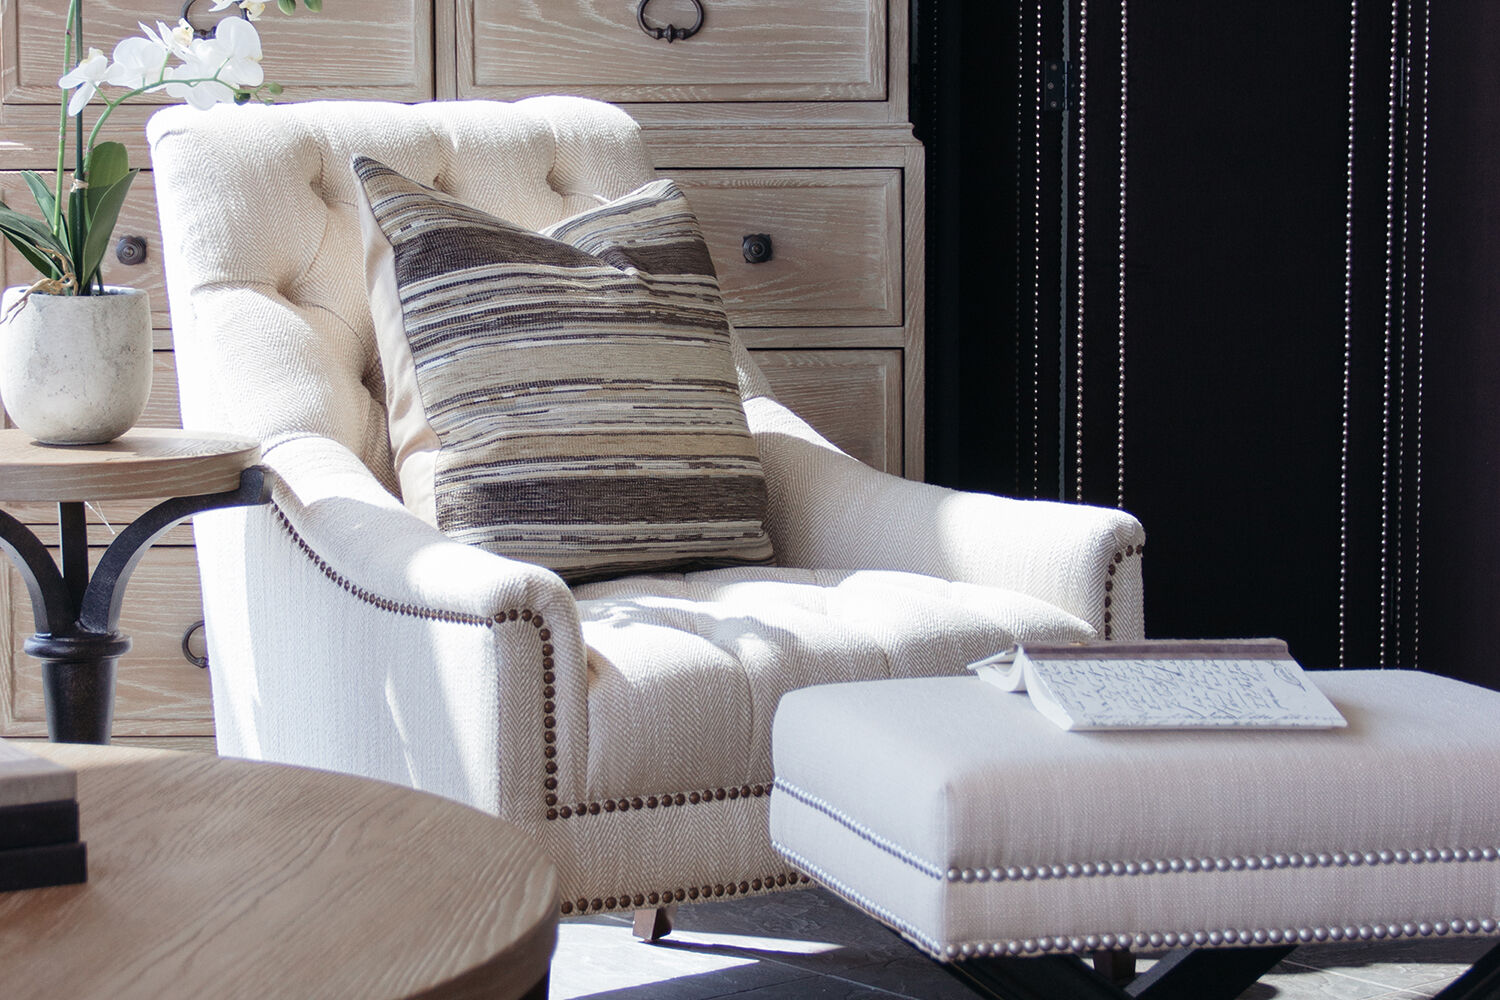 schnadig sofa 9090 ivory set button tufted traditional 33 quot chair in cream mathis